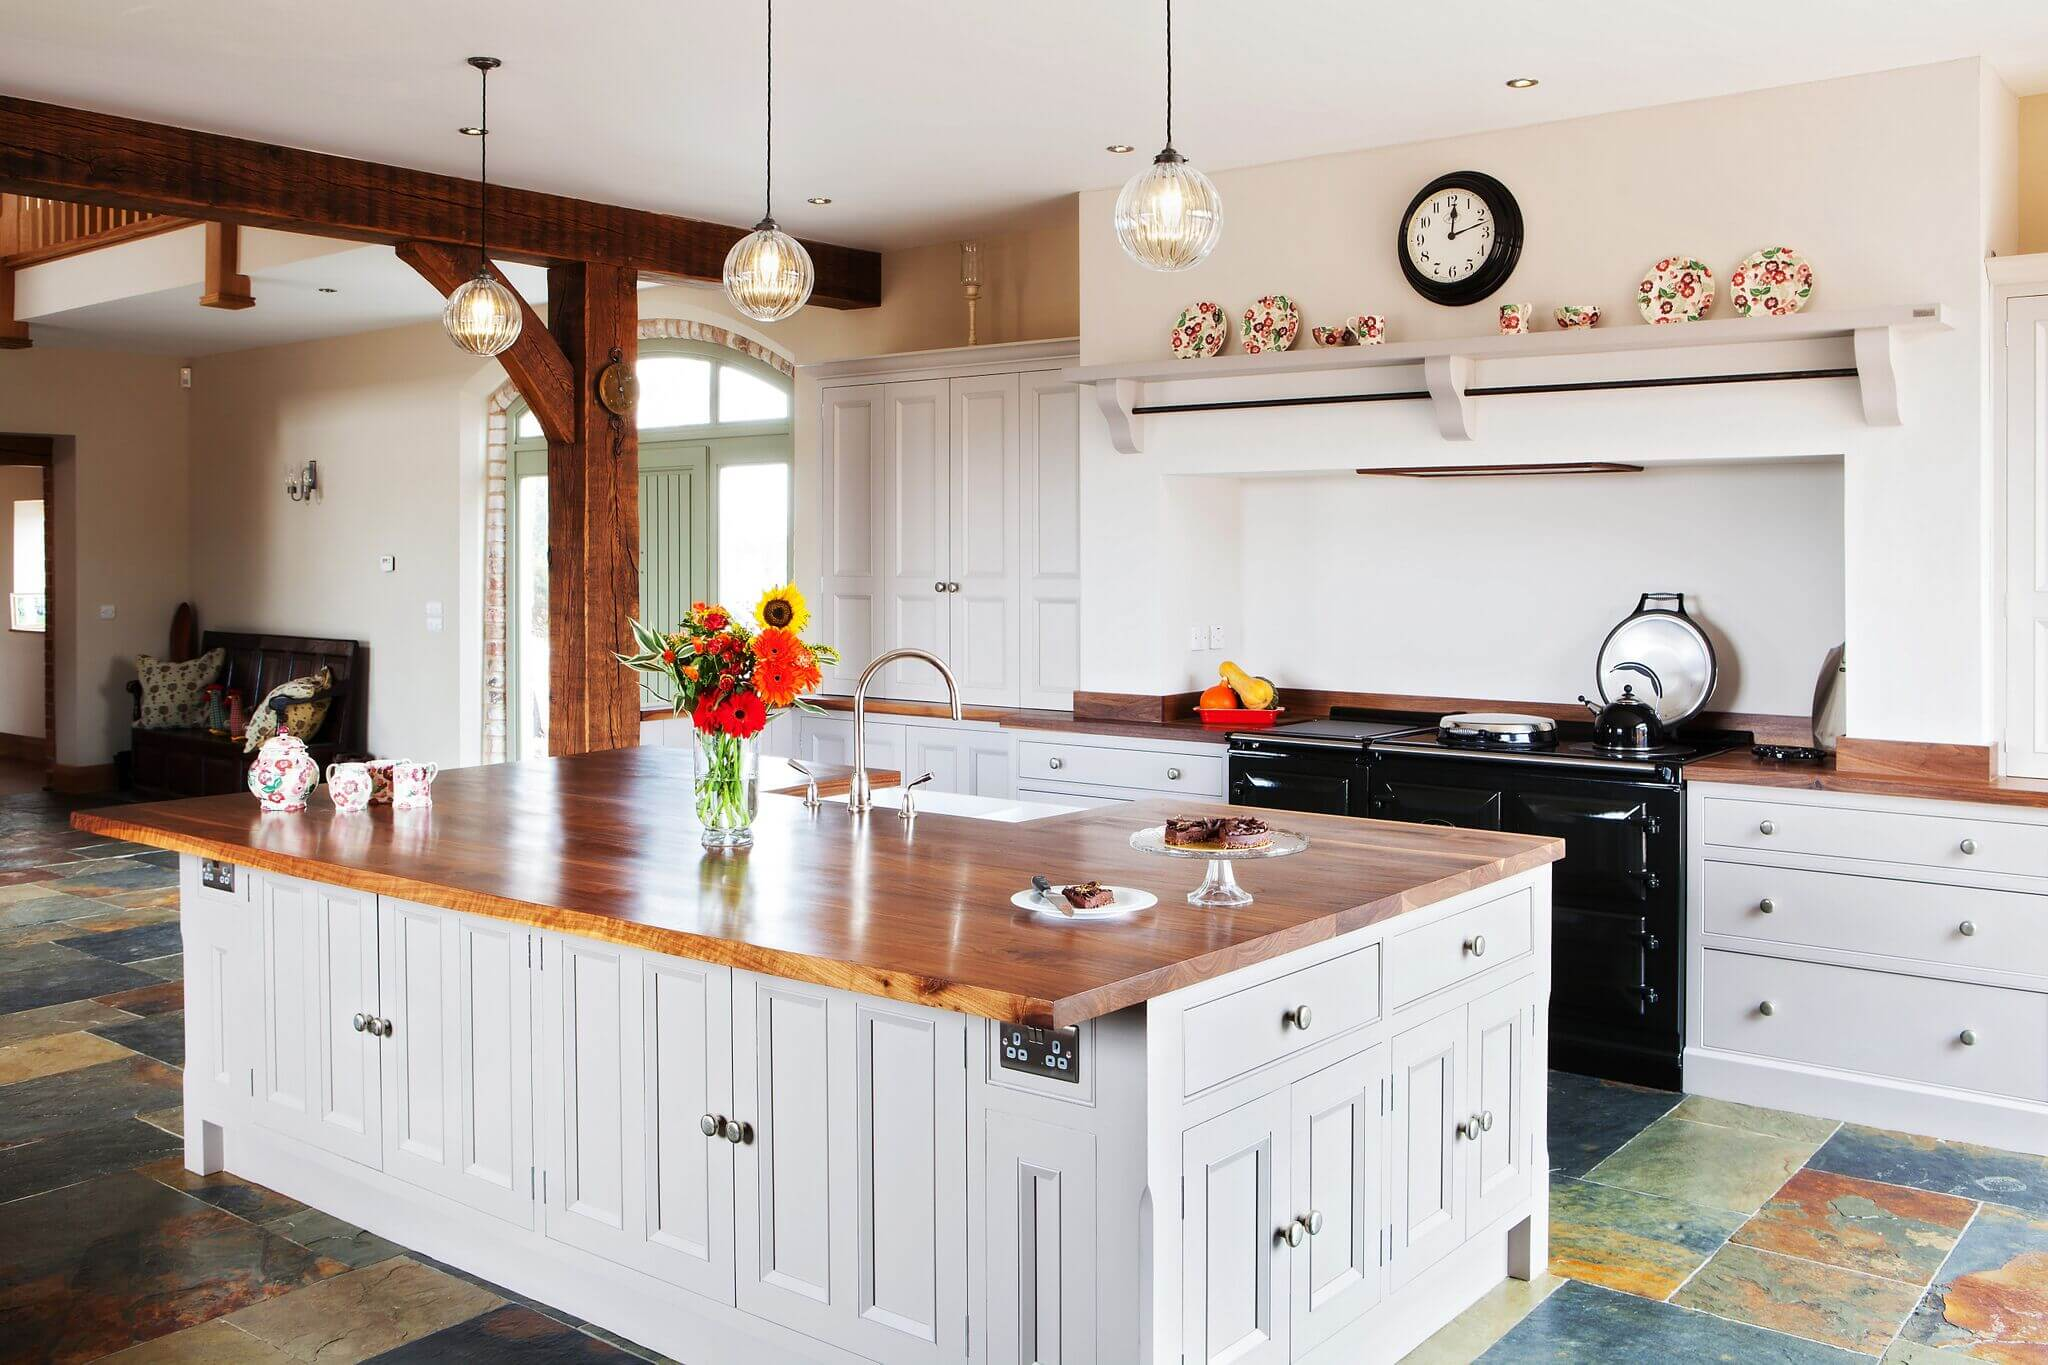 North Kyme Kitchen - Hill Farm Furniture